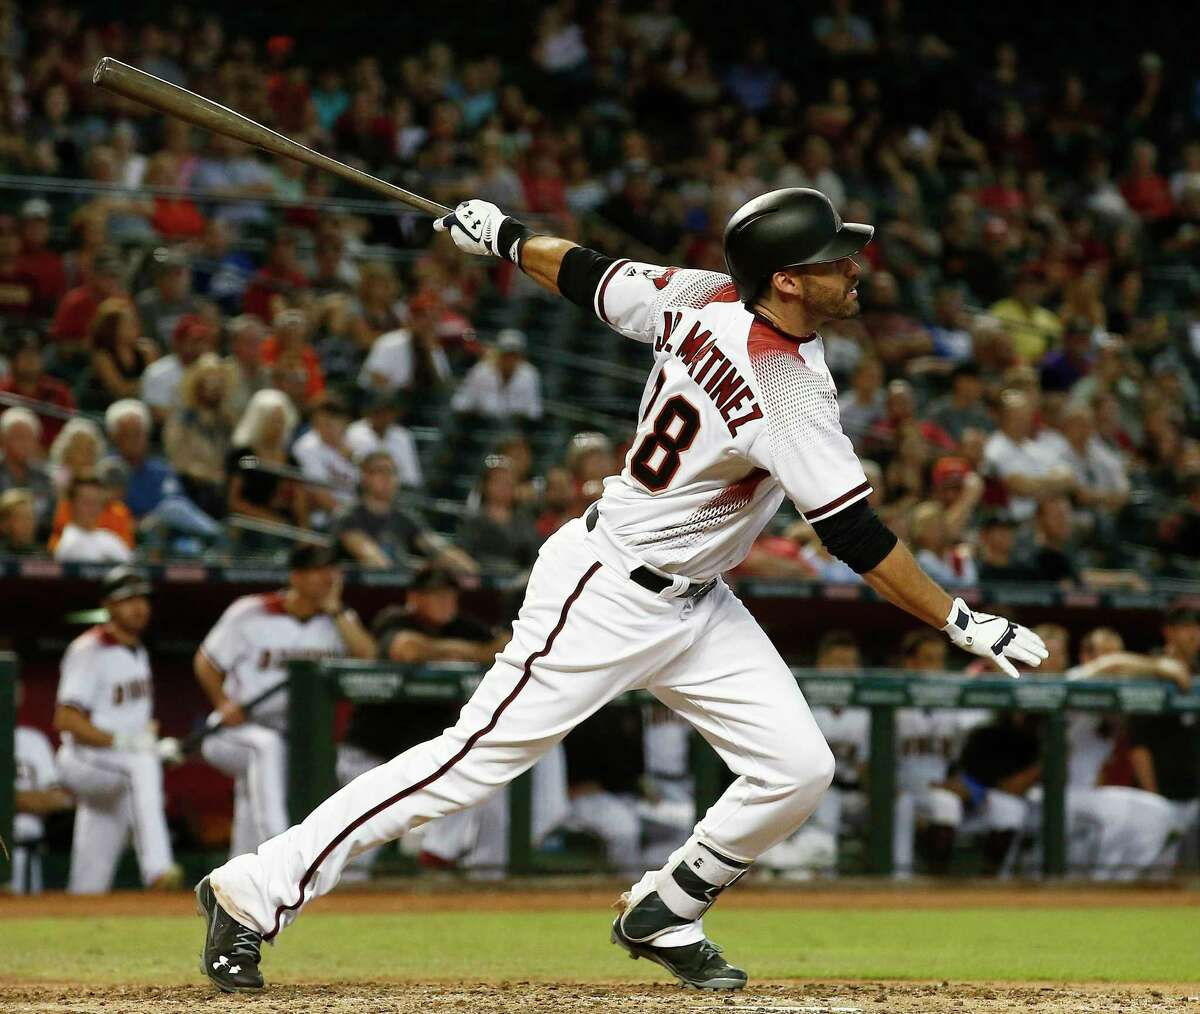 FILE - In this Sept. 27, 2017, file photo, Arizona Diamondbacks' J.D. Martinez, right, watches the flight of his home run against the San Francisco Giants during the ninth inning of a baseball game in Phoenix. Martinez has had a thunderous last half to the season, and it only picked up steam down the stretch. (AP Photo/Ross D. Franklin, File) ORG XMIT: NY161